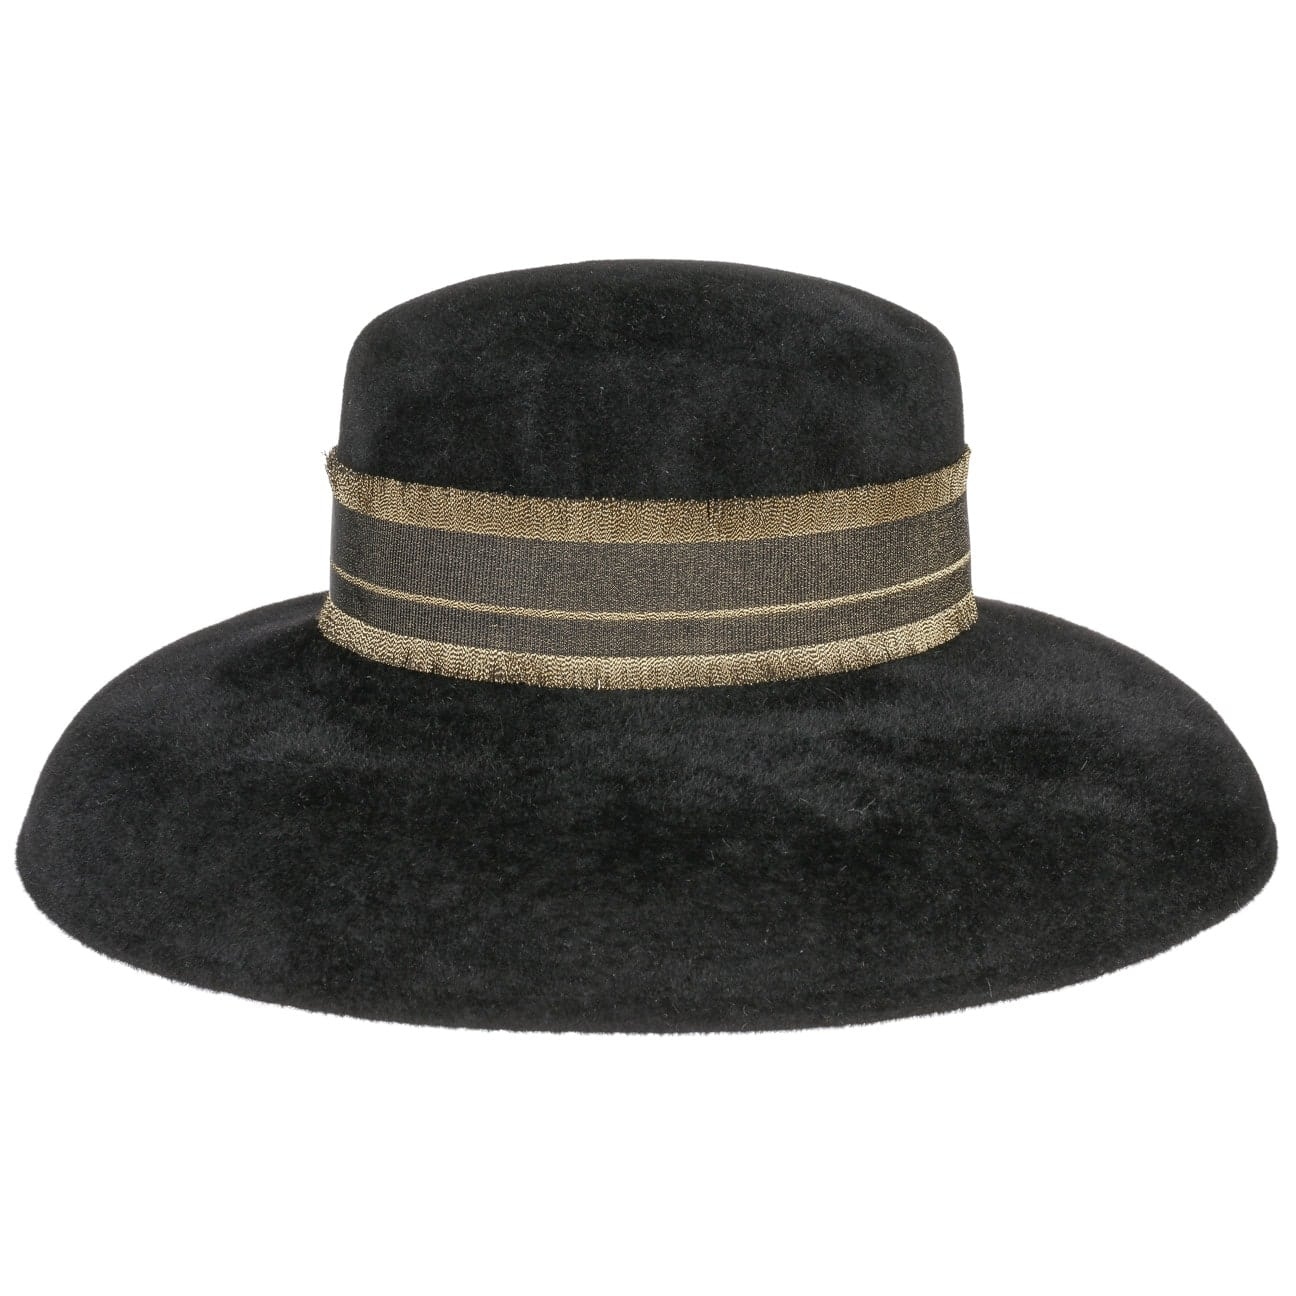 Sombrero de Fieltro Golden Audrey by Borsalino